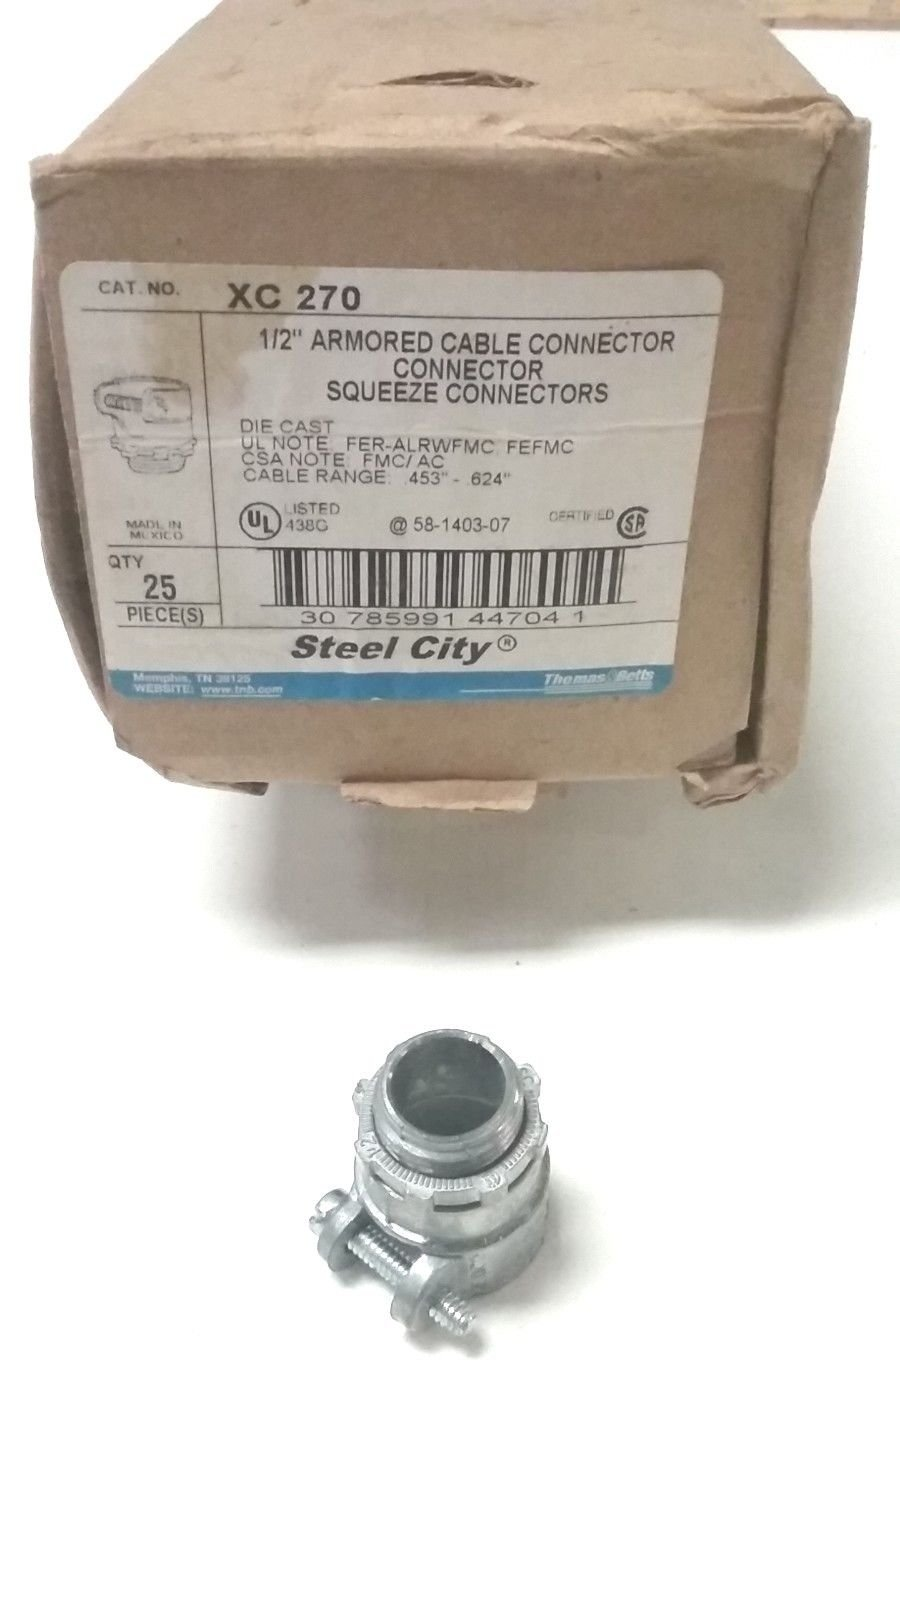 25 PC. Steel City XC 270 1/2'' Armored Cable Connector Squeeze Connectors - USA